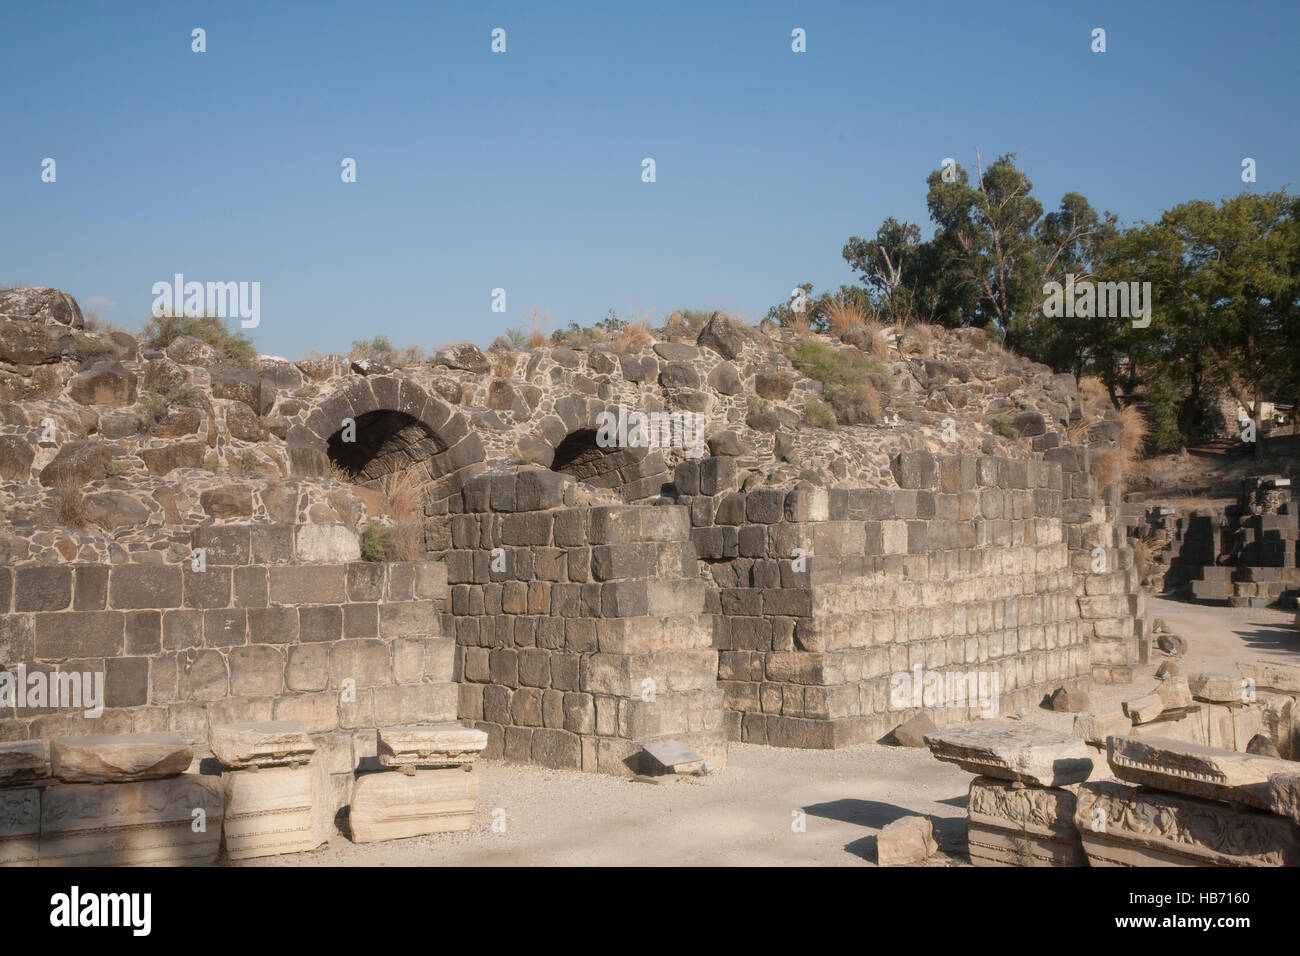 Israel, the North,  Bet She'an National Park, ancient city of Bet She'an-Scythopolis, archaelogical excavations - Stock Image